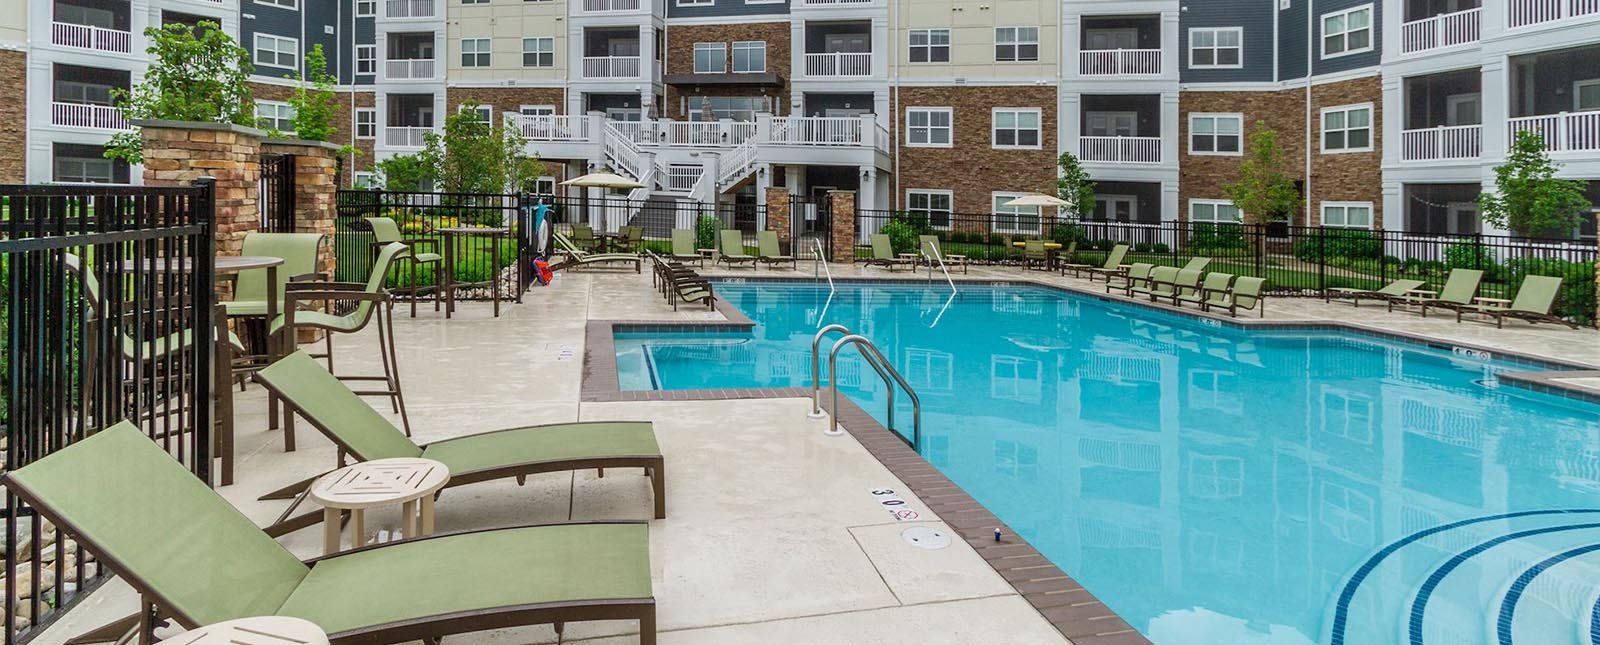 Poolside lounge of The Haven luxury apartments in Malvern, PA